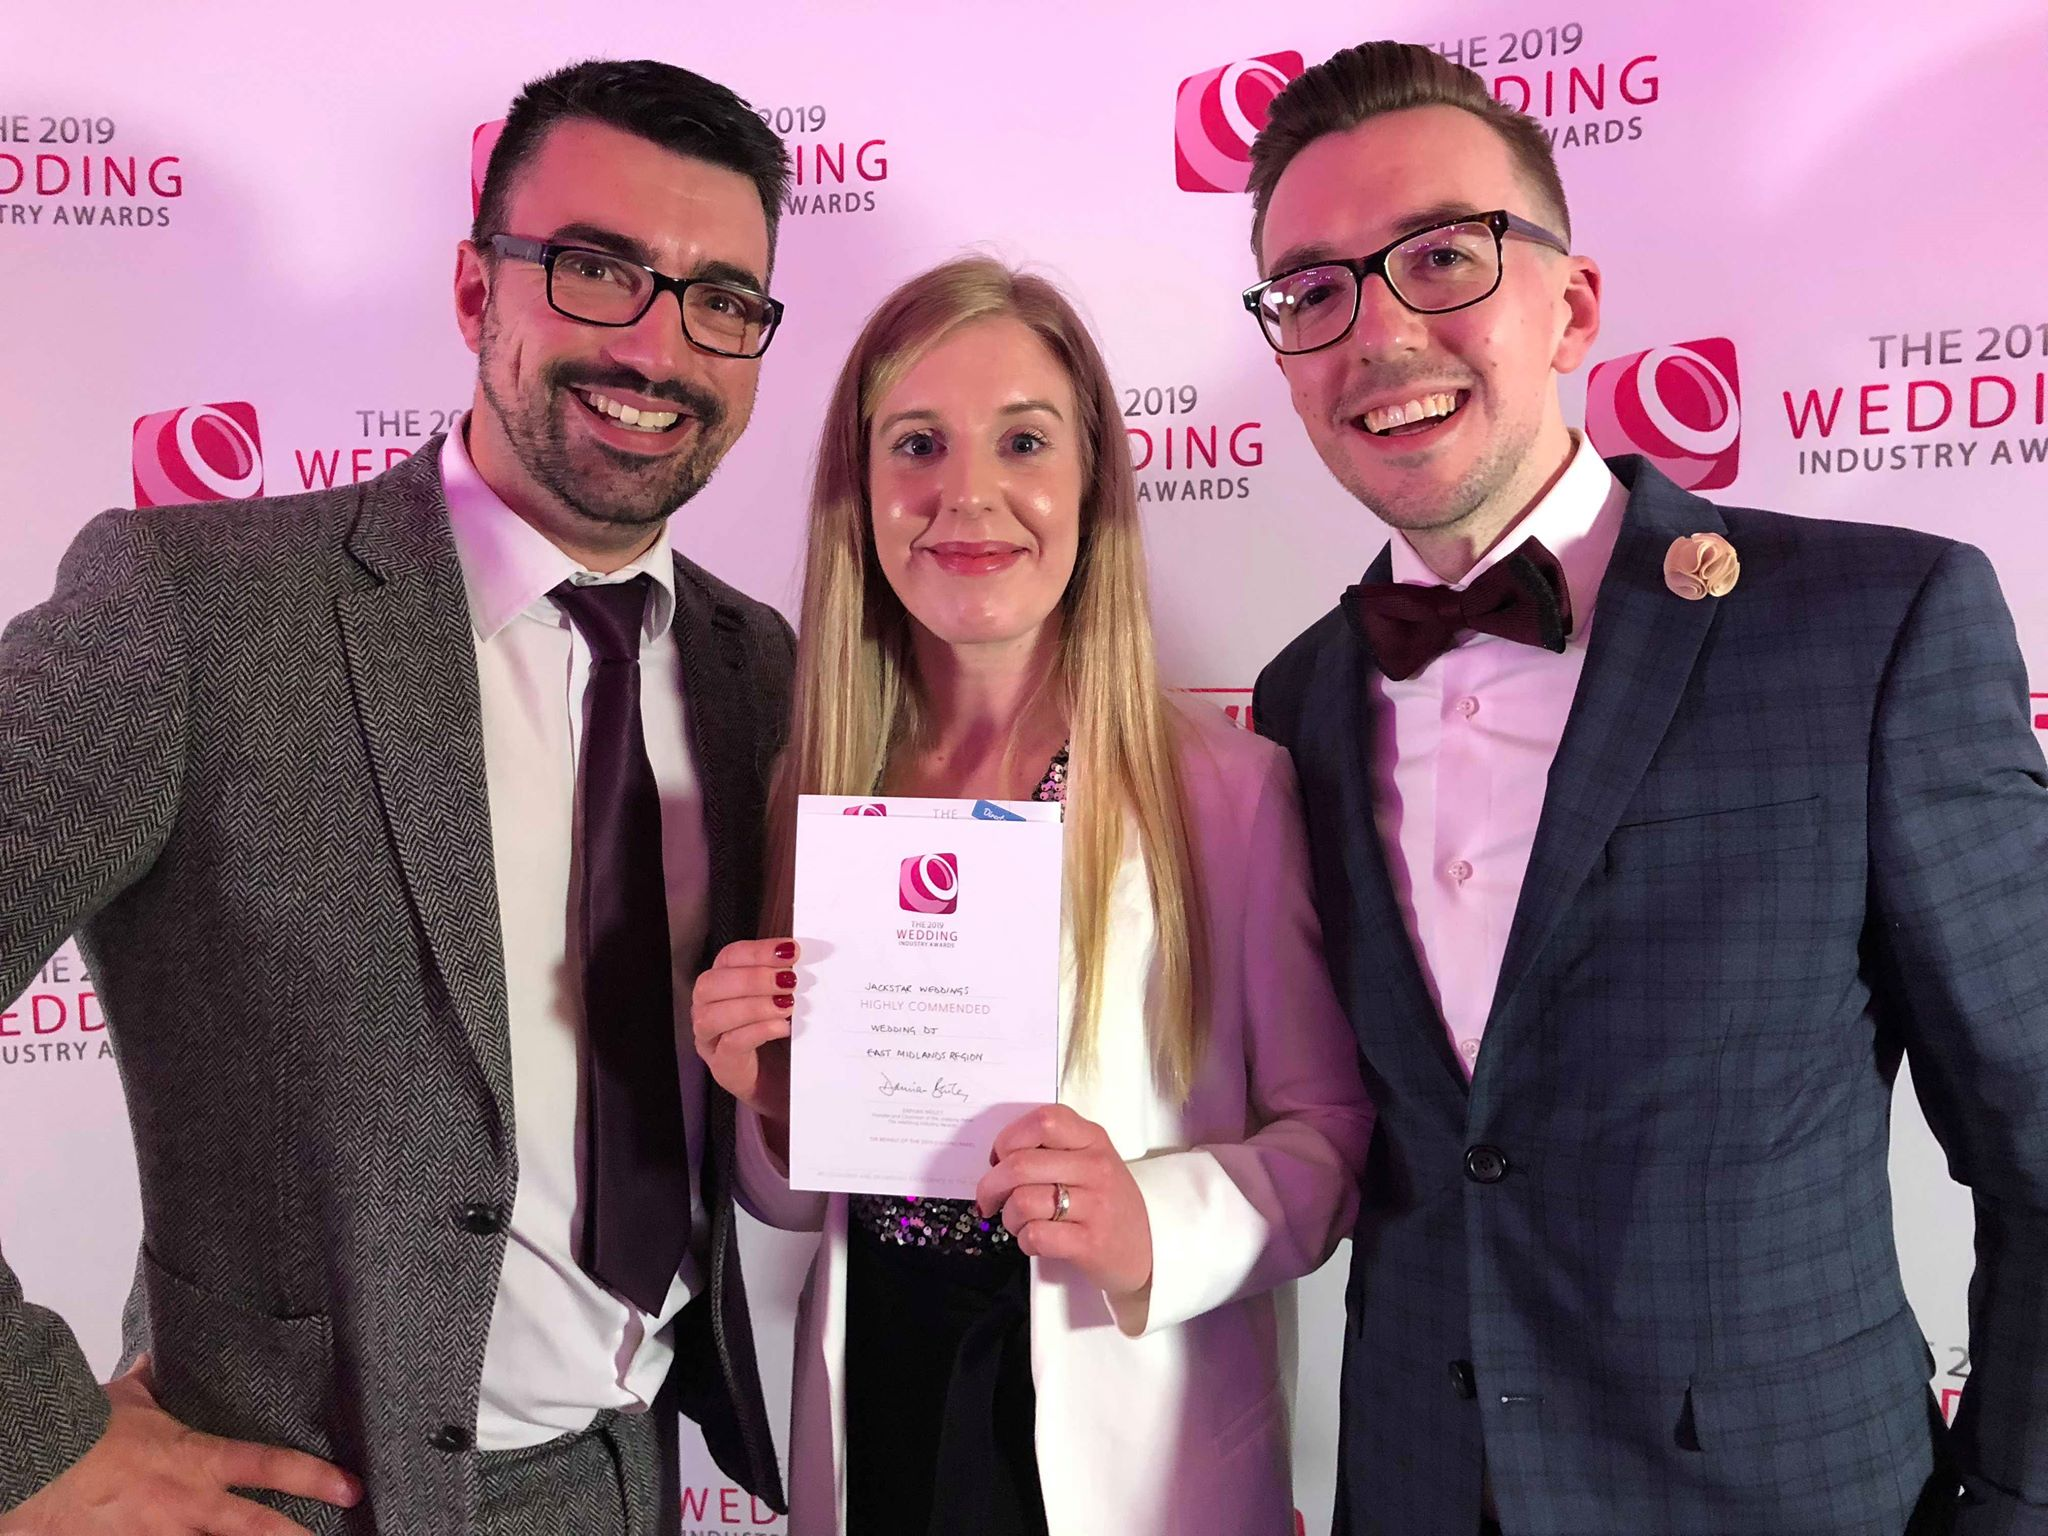 WeddingIndustryAwards2019